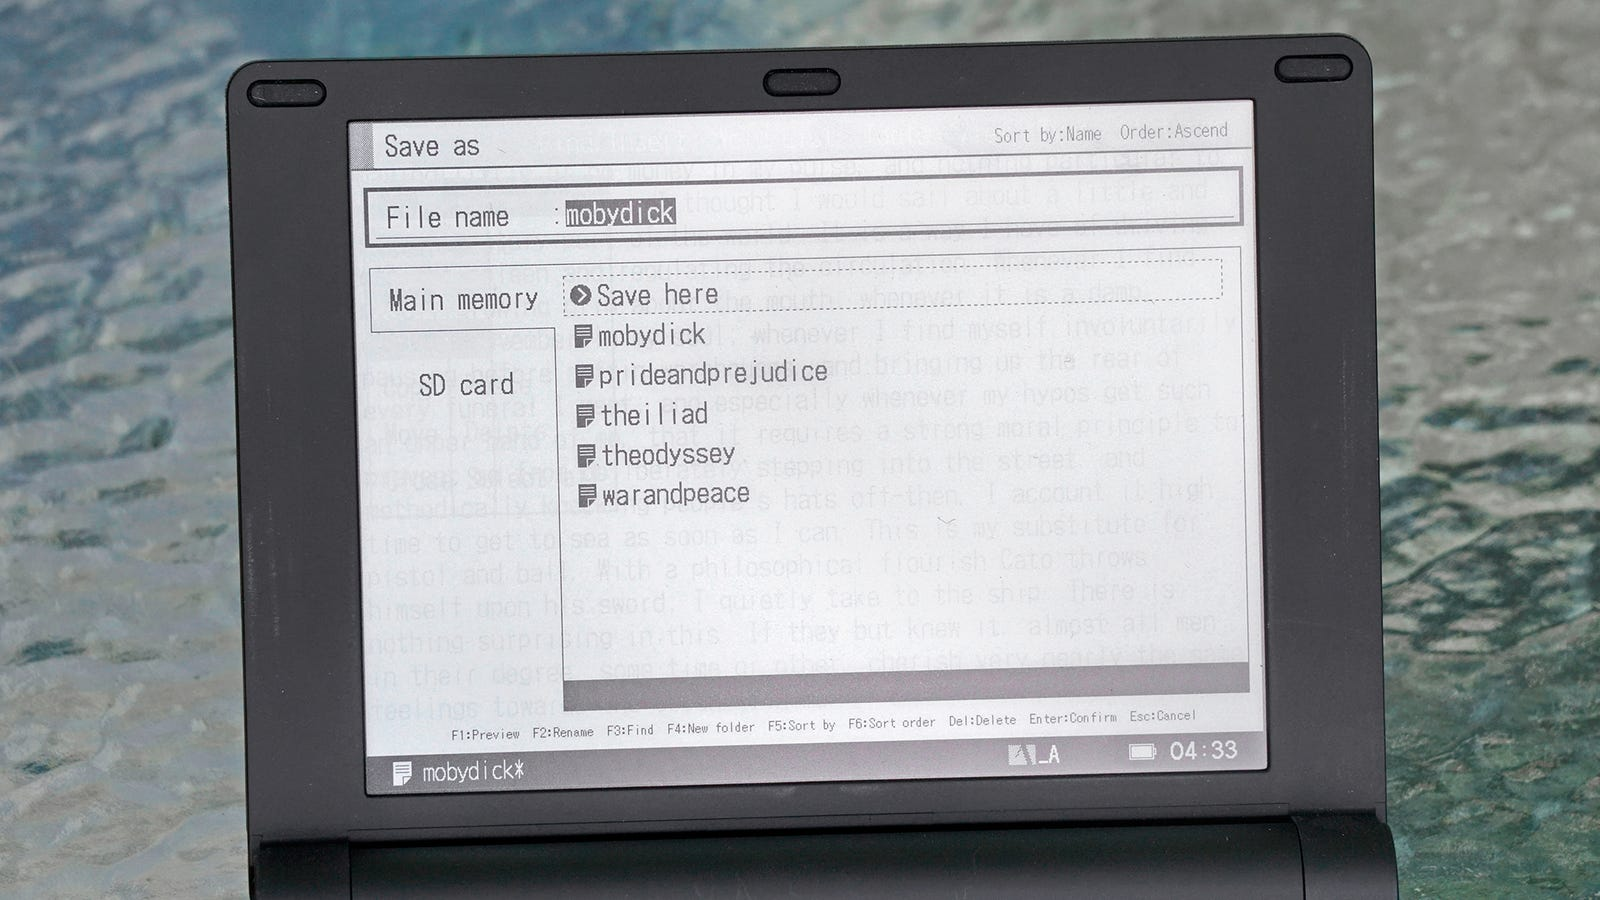 Files can be stored on the device itself, or on an SD card for easier file transfers.